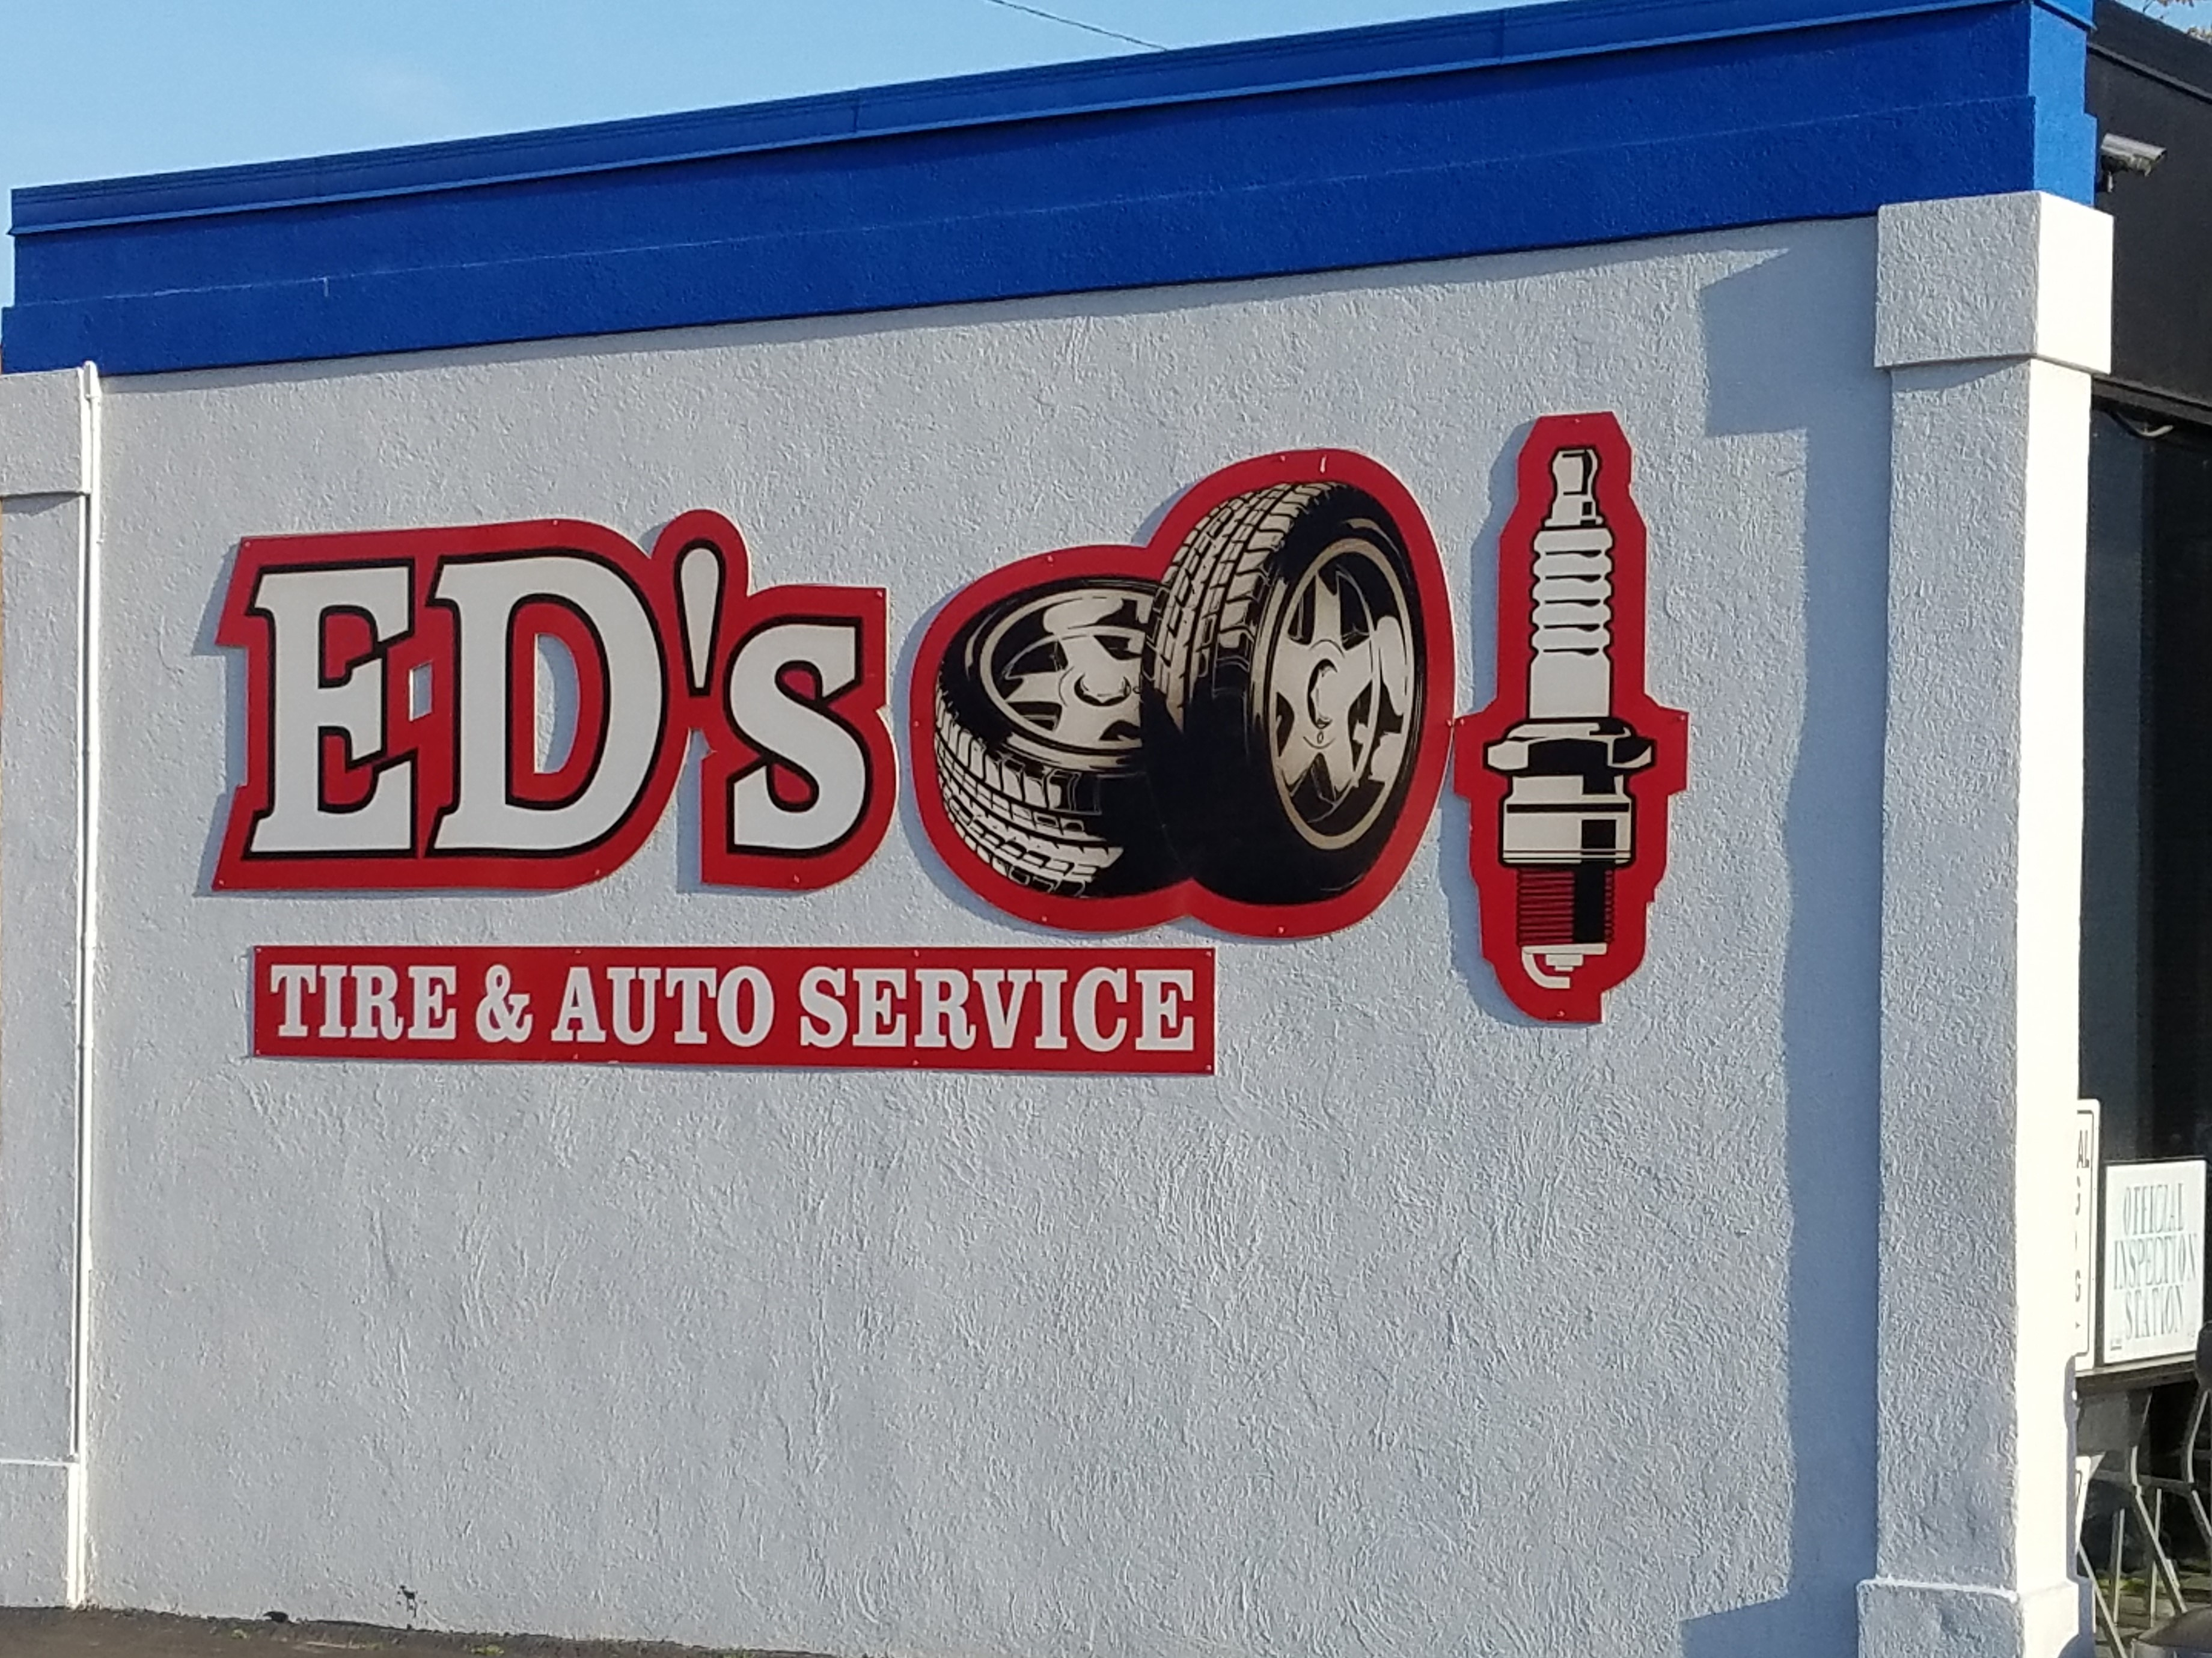 Meet A Tirebuyer Installer Joe Quigg Of Ed S Tire And Auto Services